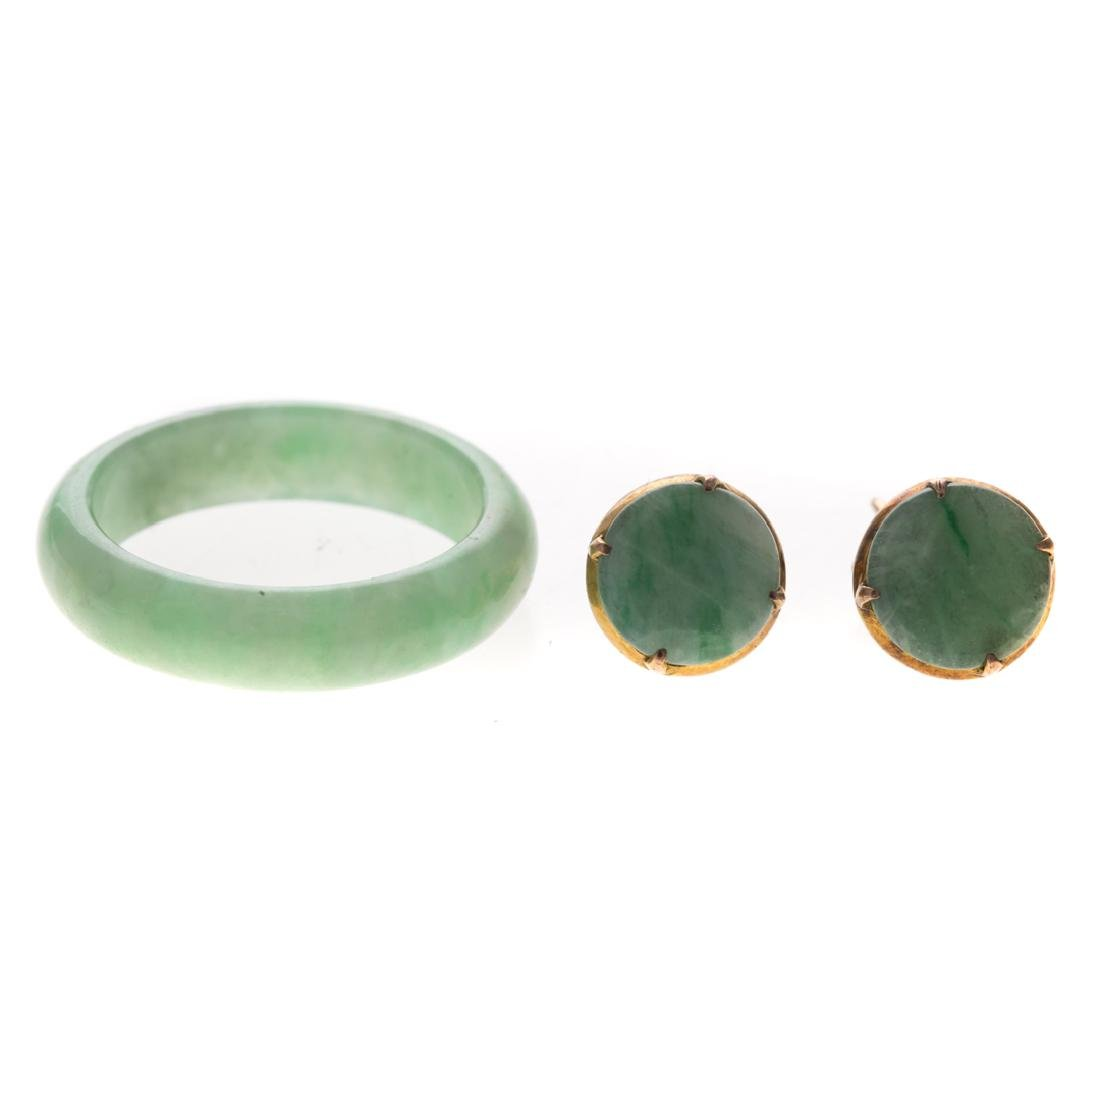 A Lady's Jade Ring & Jade Earrings in 14K